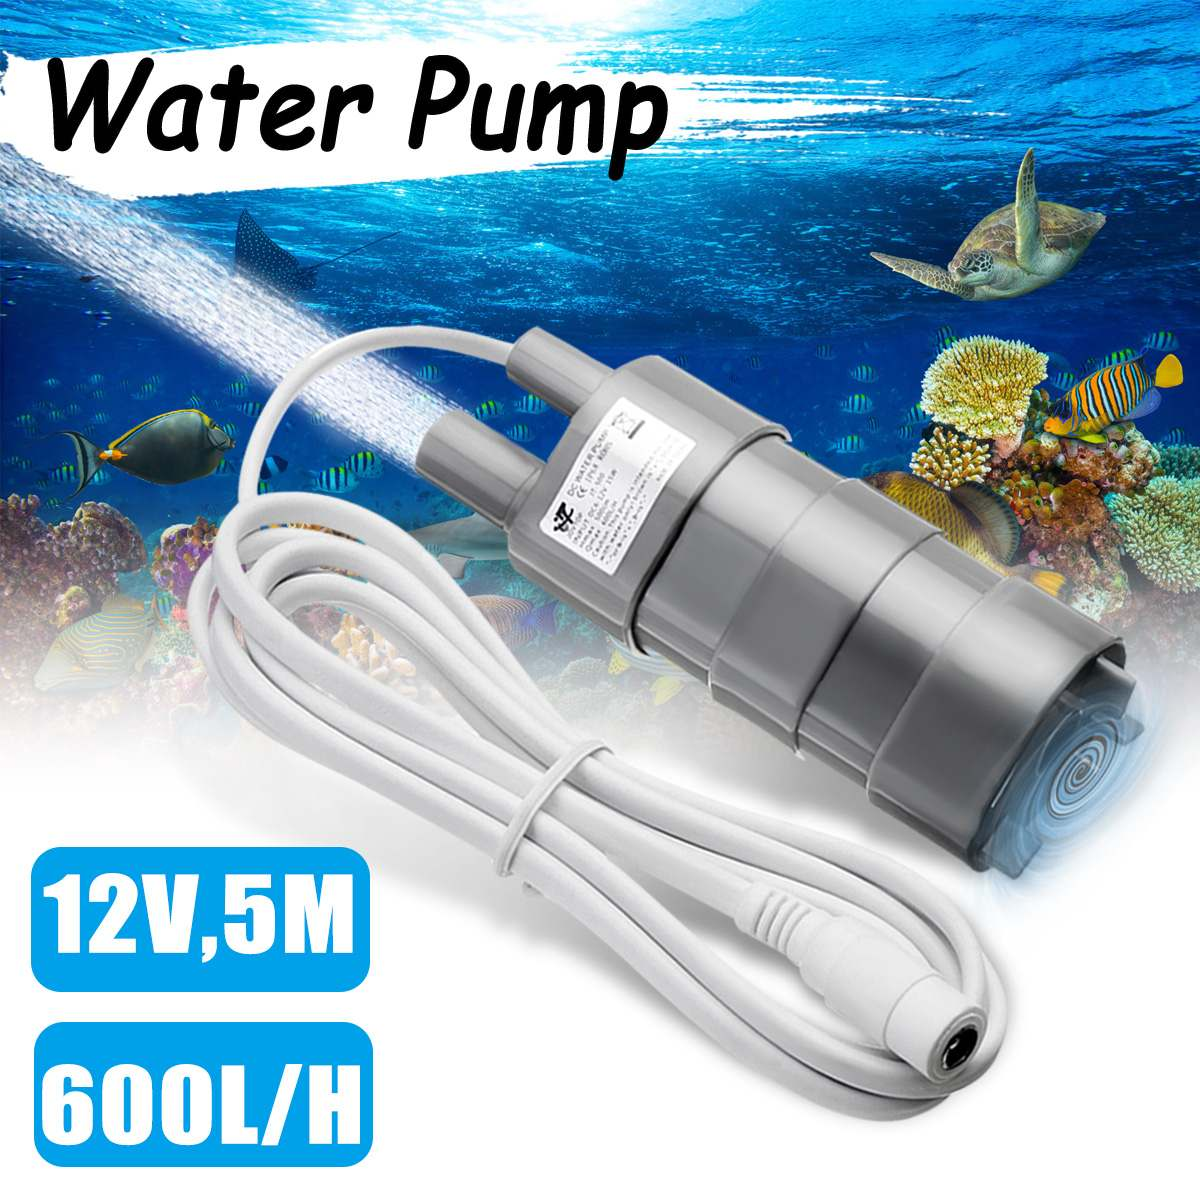 WOLIKE DC 12V Water Pump Brushless Magnetic Submersible Garden Fish Pond 5M 600L/H Micro Submersible Motor Water PumpWOLIKE DC 12V Water Pump Brushless Magnetic Submersible Garden Fish Pond 5M 600L/H Micro Submersible Motor Water Pump